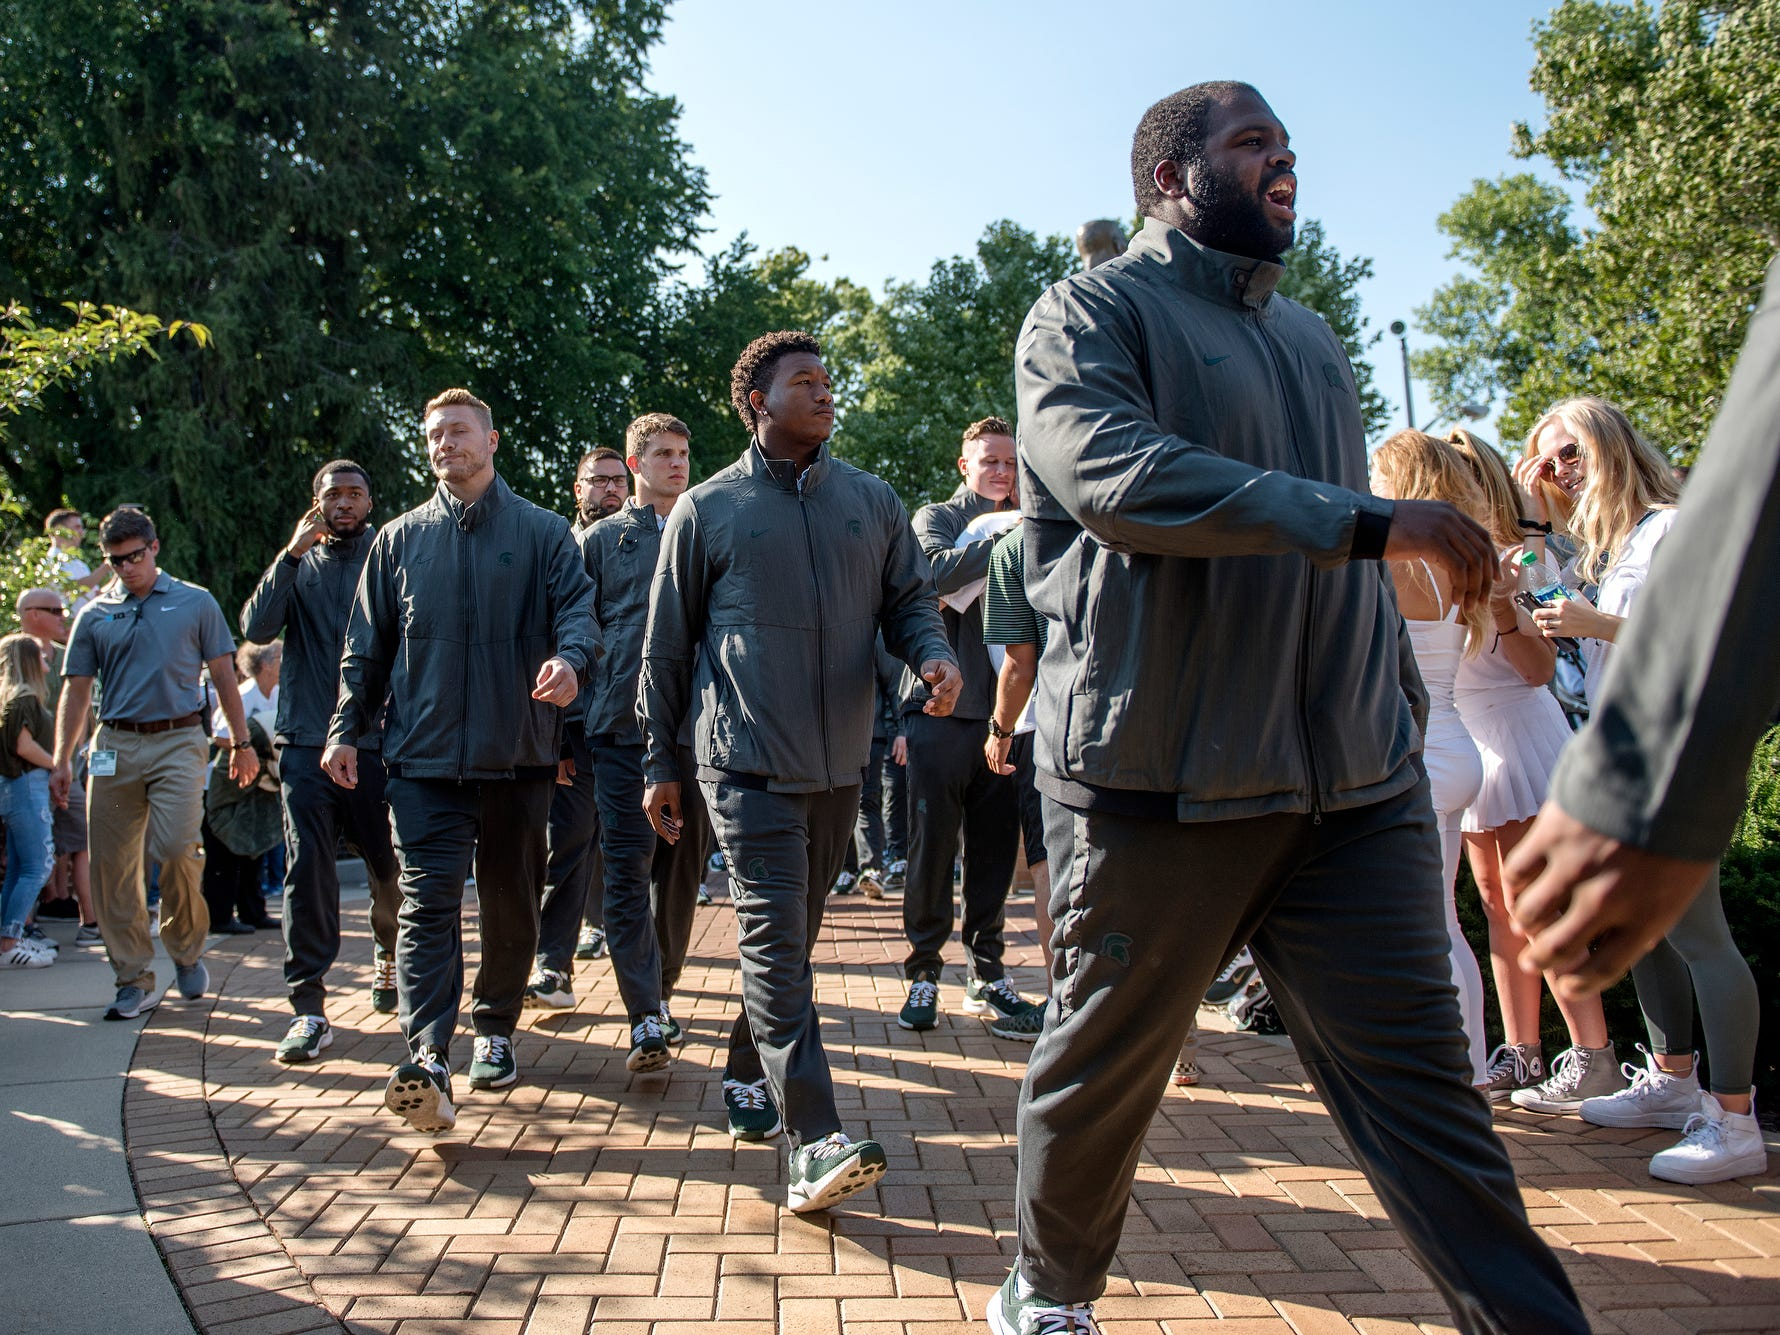 The Michigan State University football team walks by fans at the Sparty statue on campus before the Spartans' game against Utah State on Friday, Aug. 31, 2018, in East Lansing.